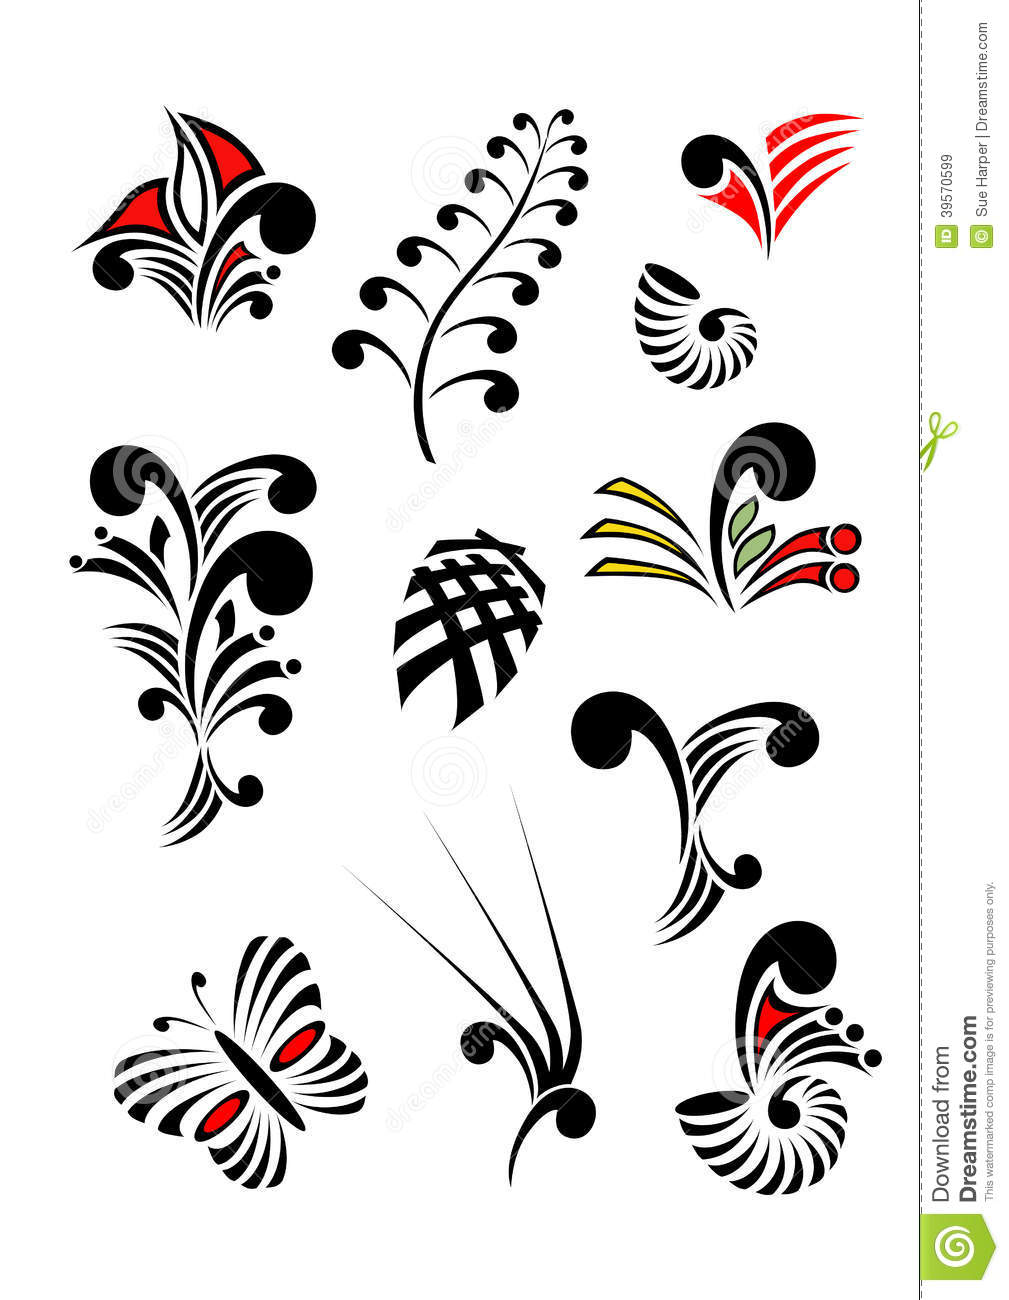 Maori Koru Design Elements Color Set Stock Illustration.